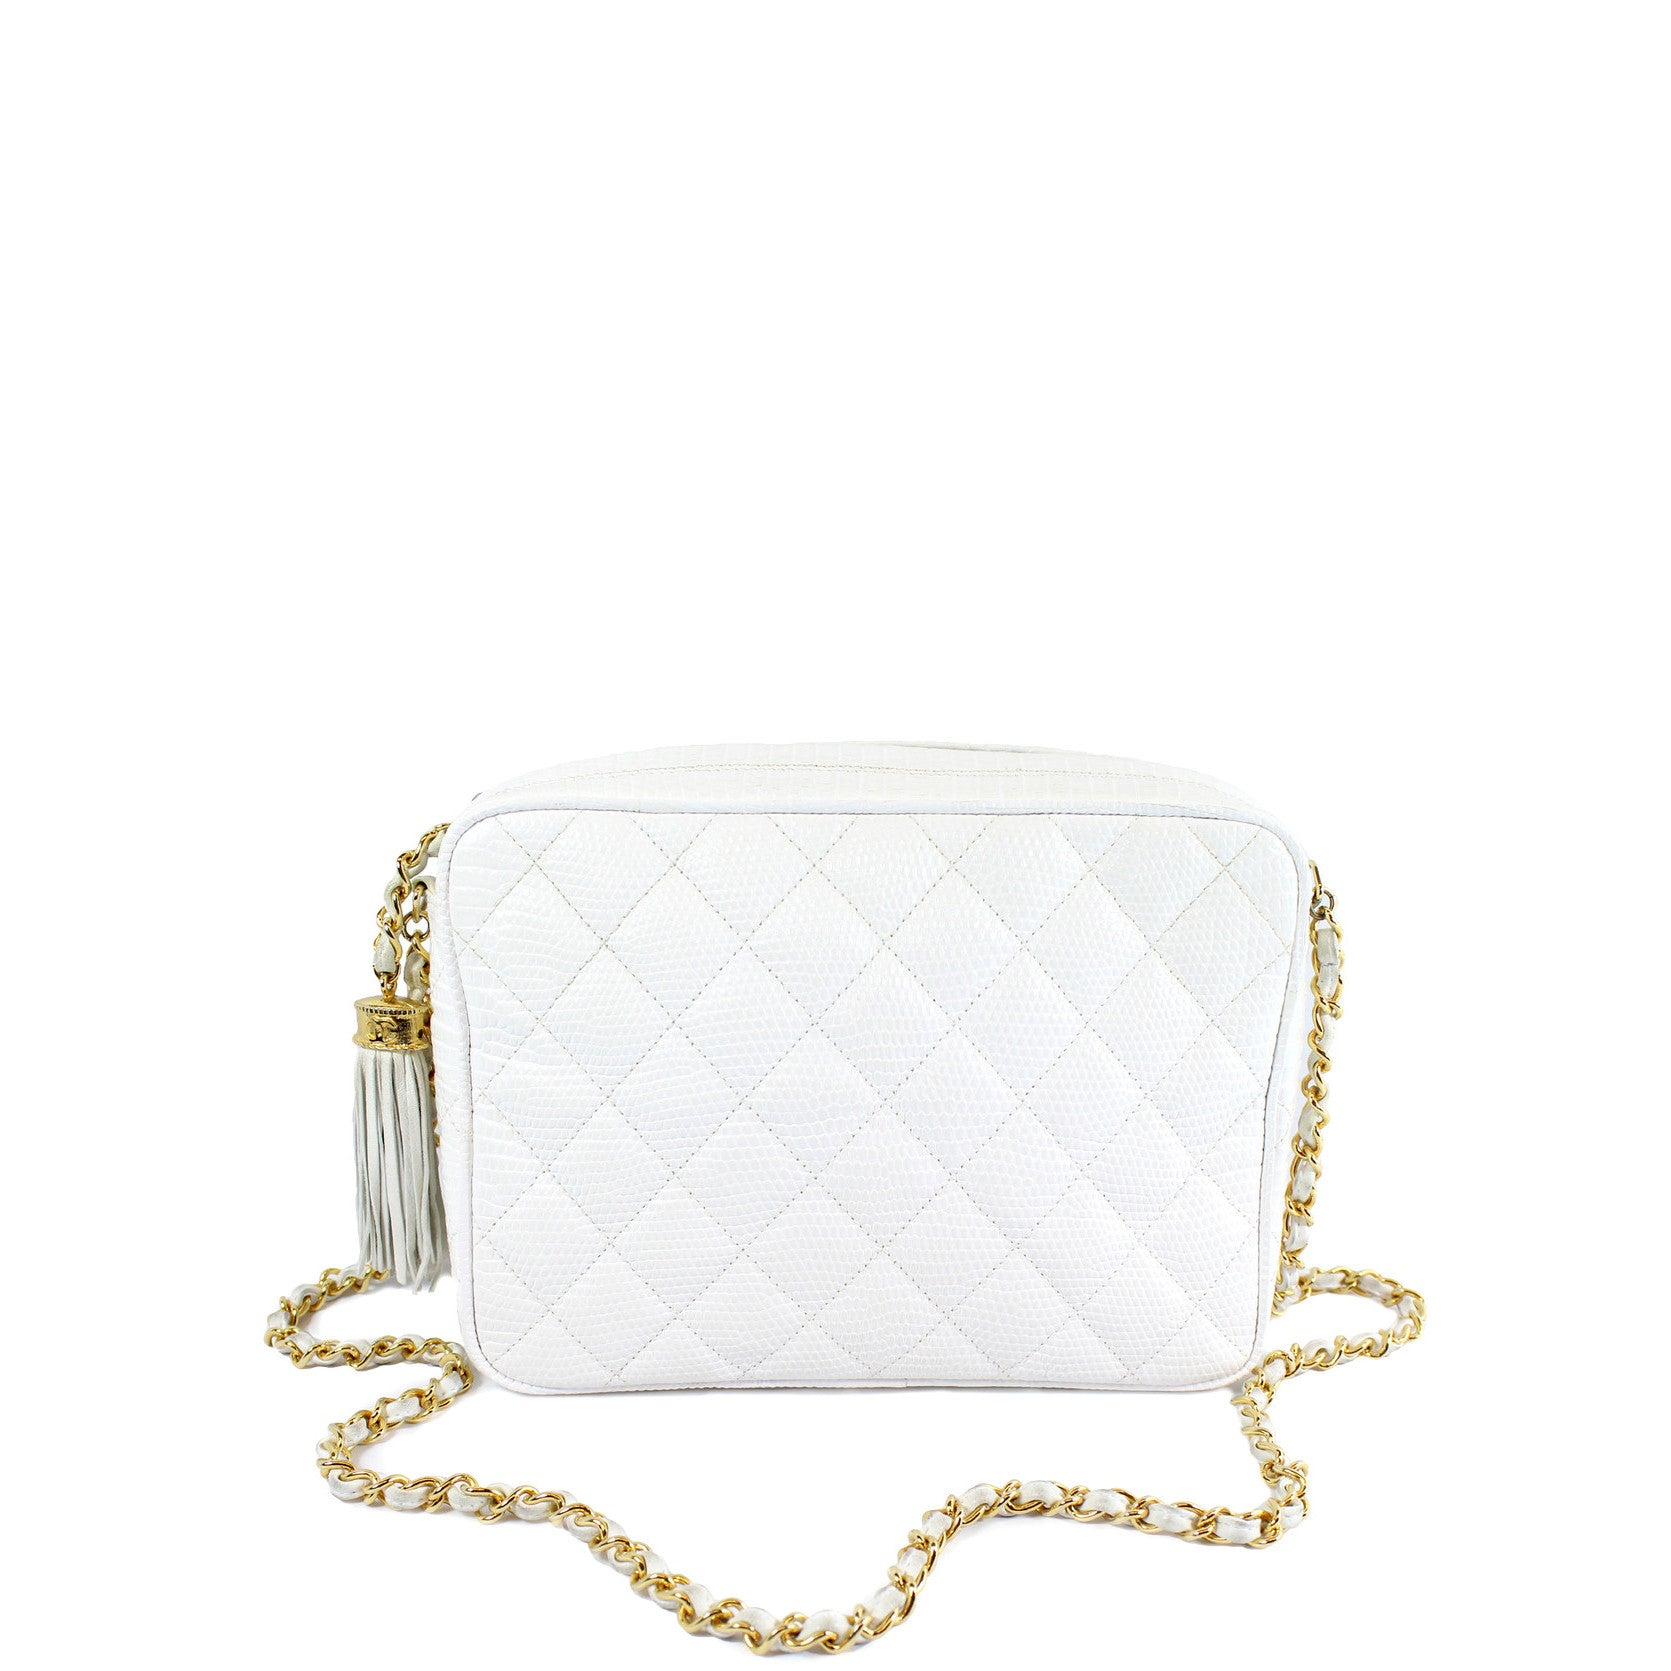 Chanel Vintage White Lizard Leather Tassel Bag - Encore Consignment - 9